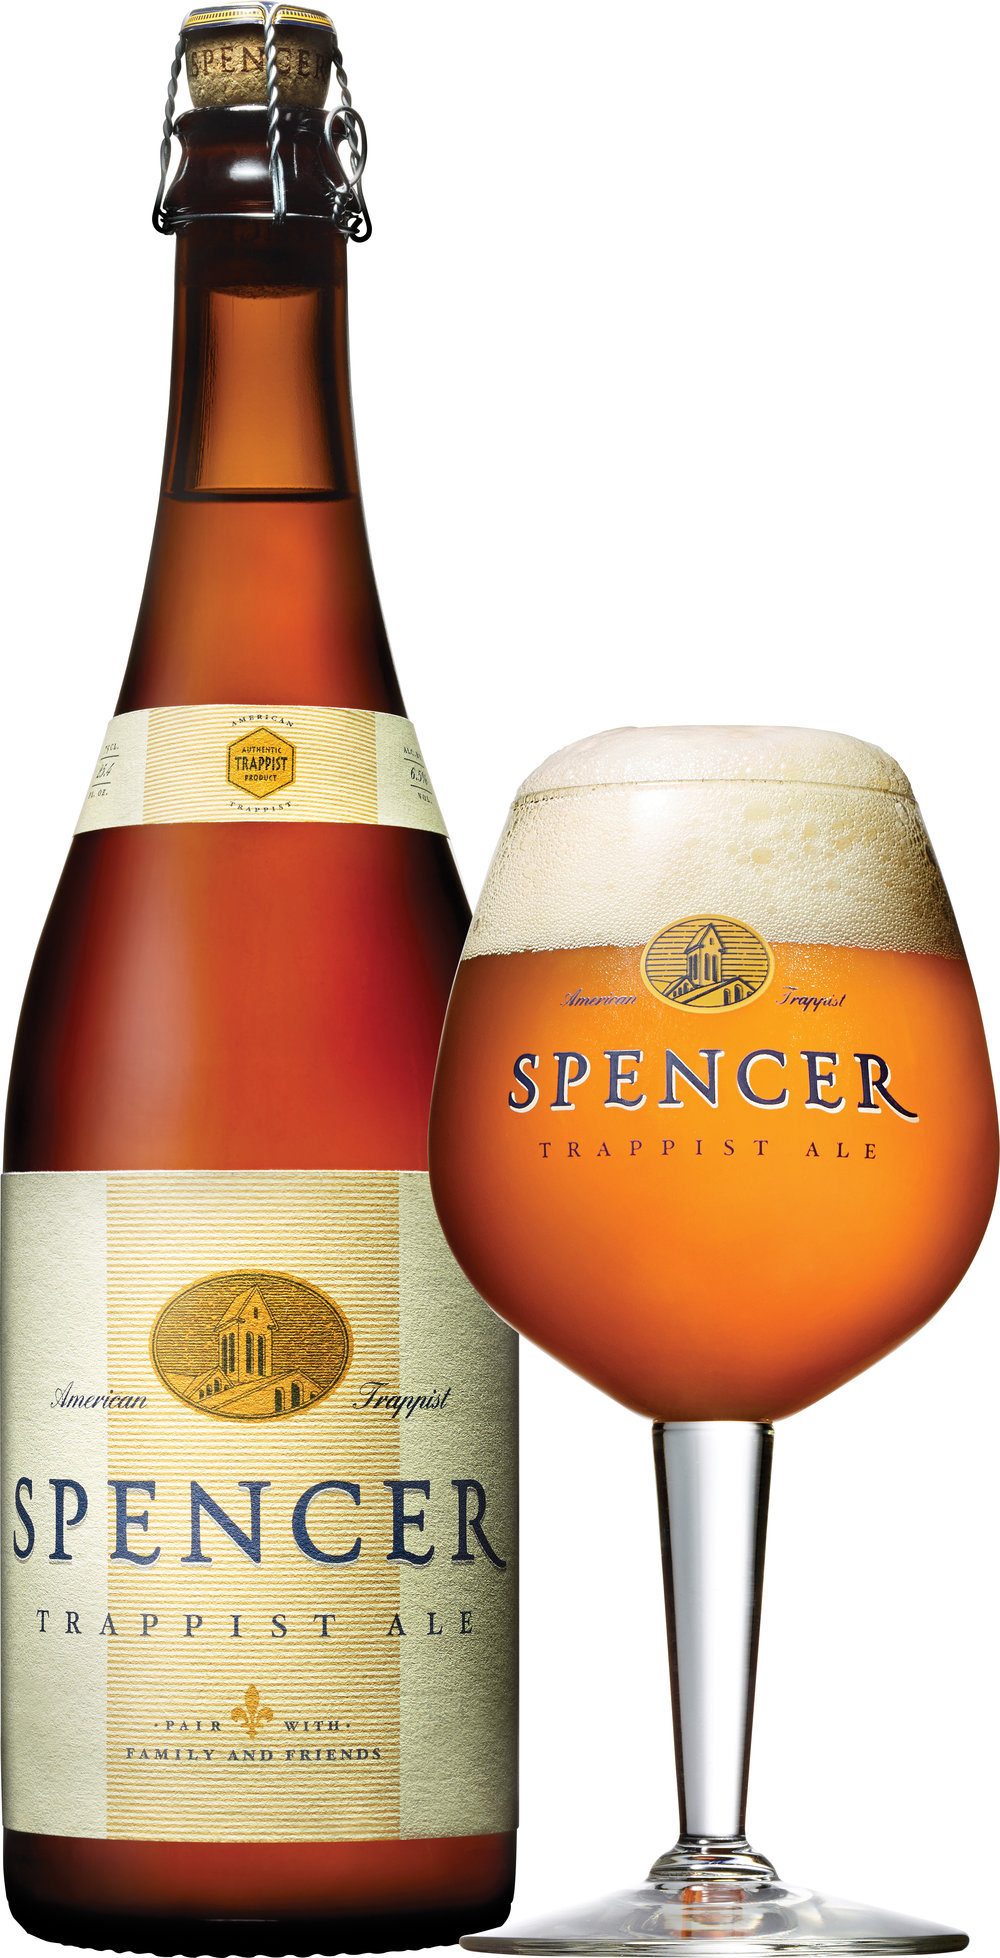 spencer_75clbottle_glass copy.jpg